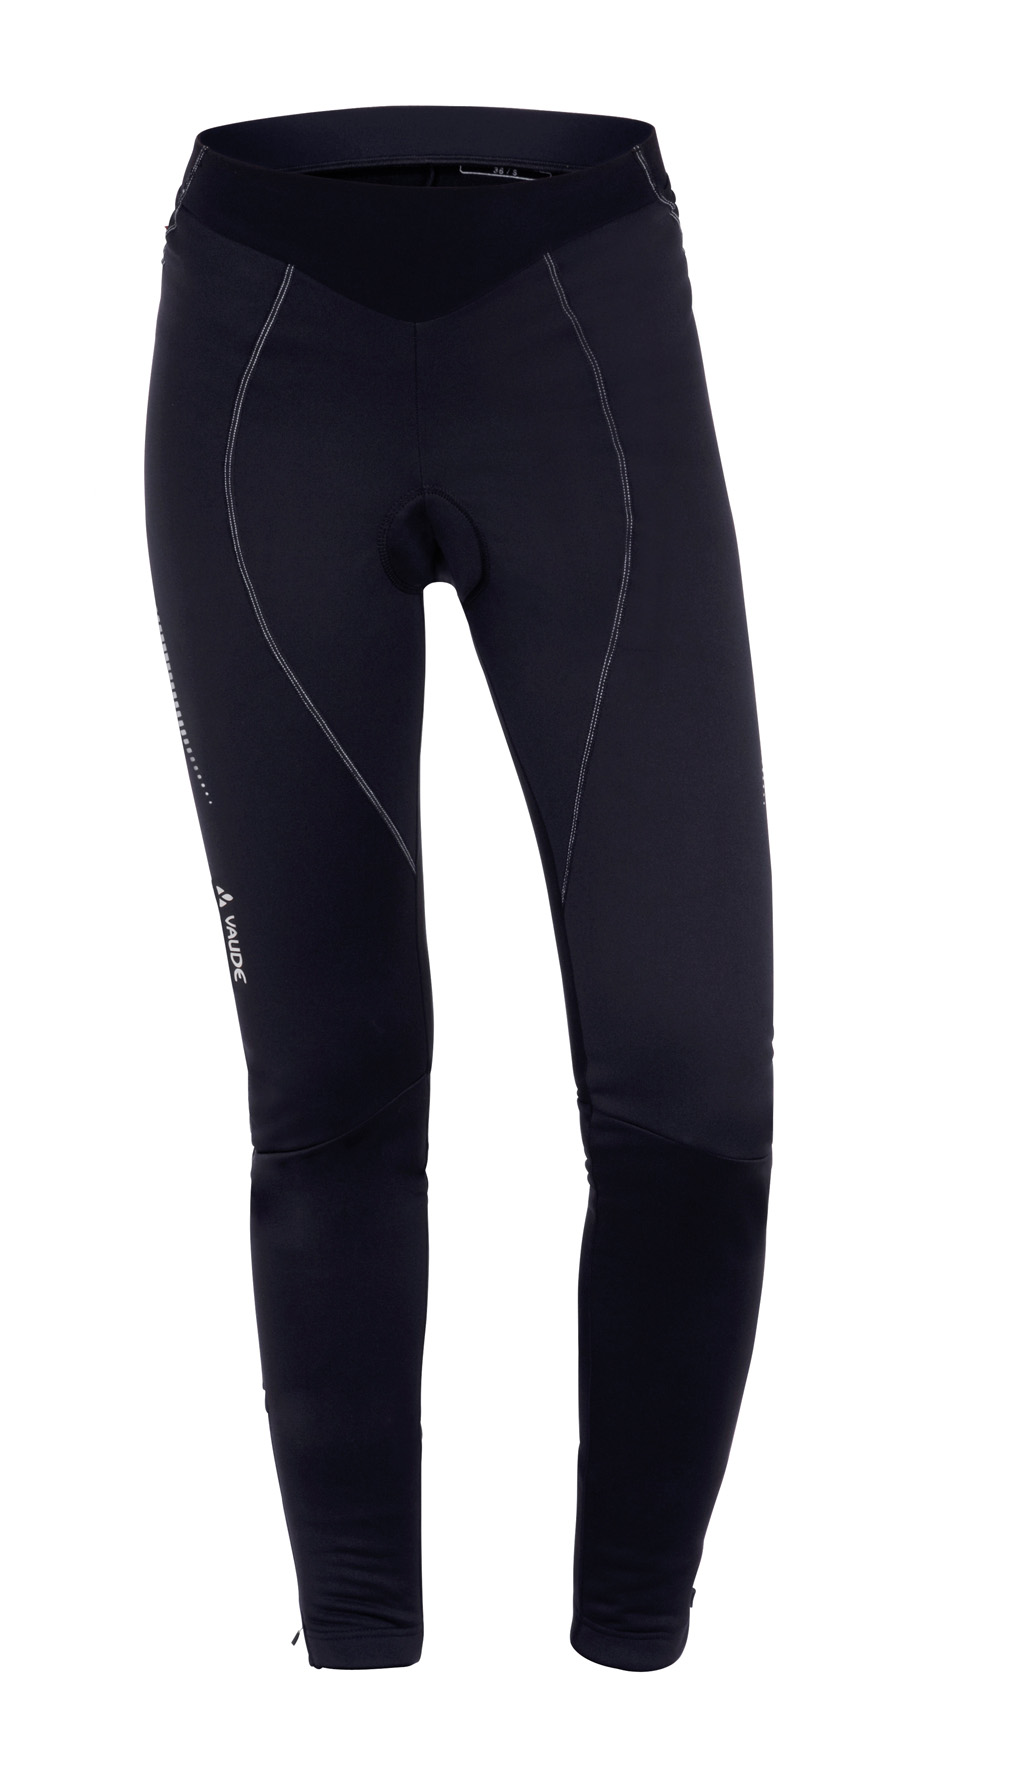 Women´s Advanced Warm Pants black Größe 34 - schneider-sports